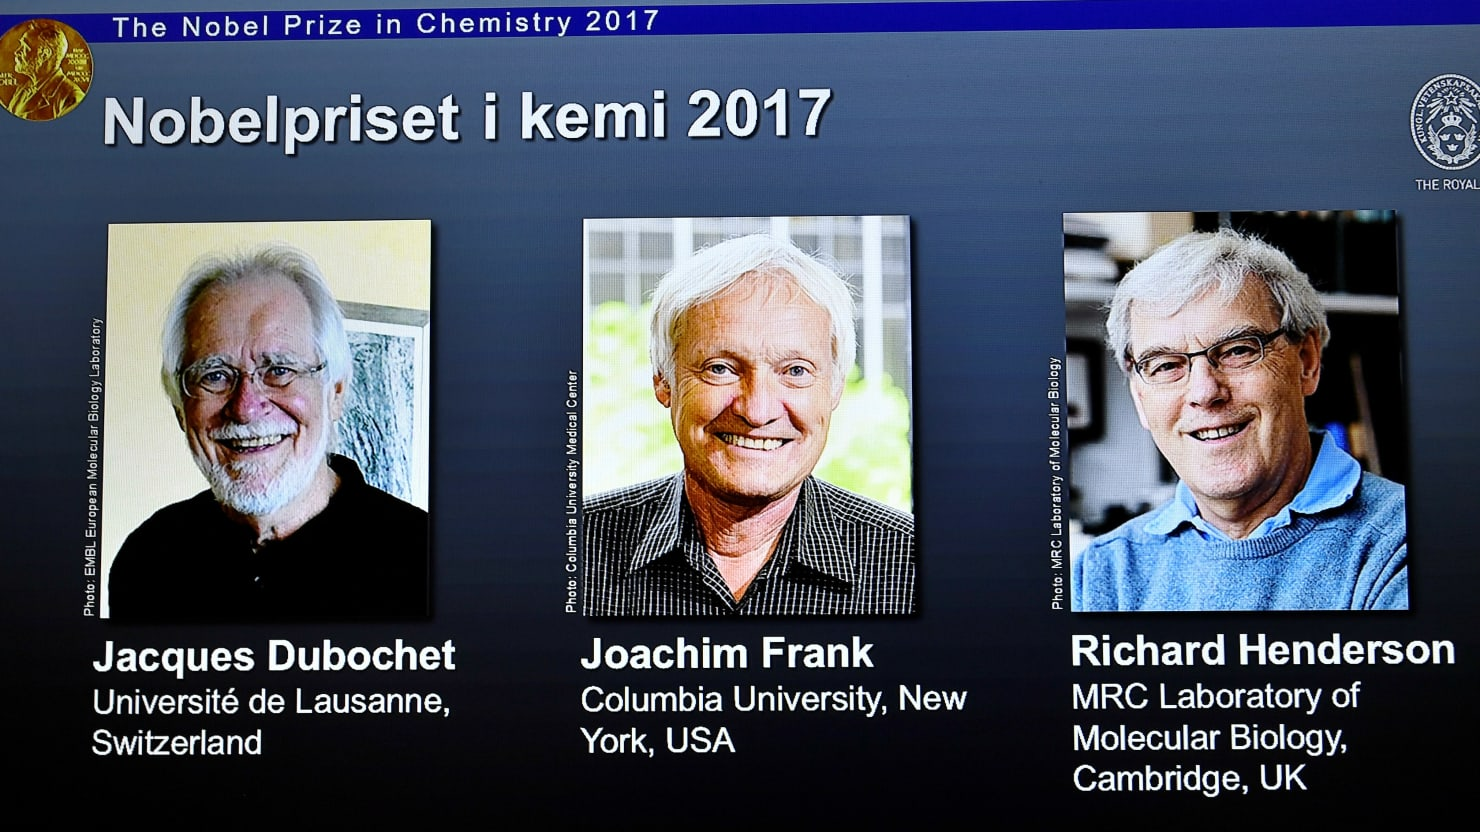 Nobel Prize in Chemistry awarded to 3